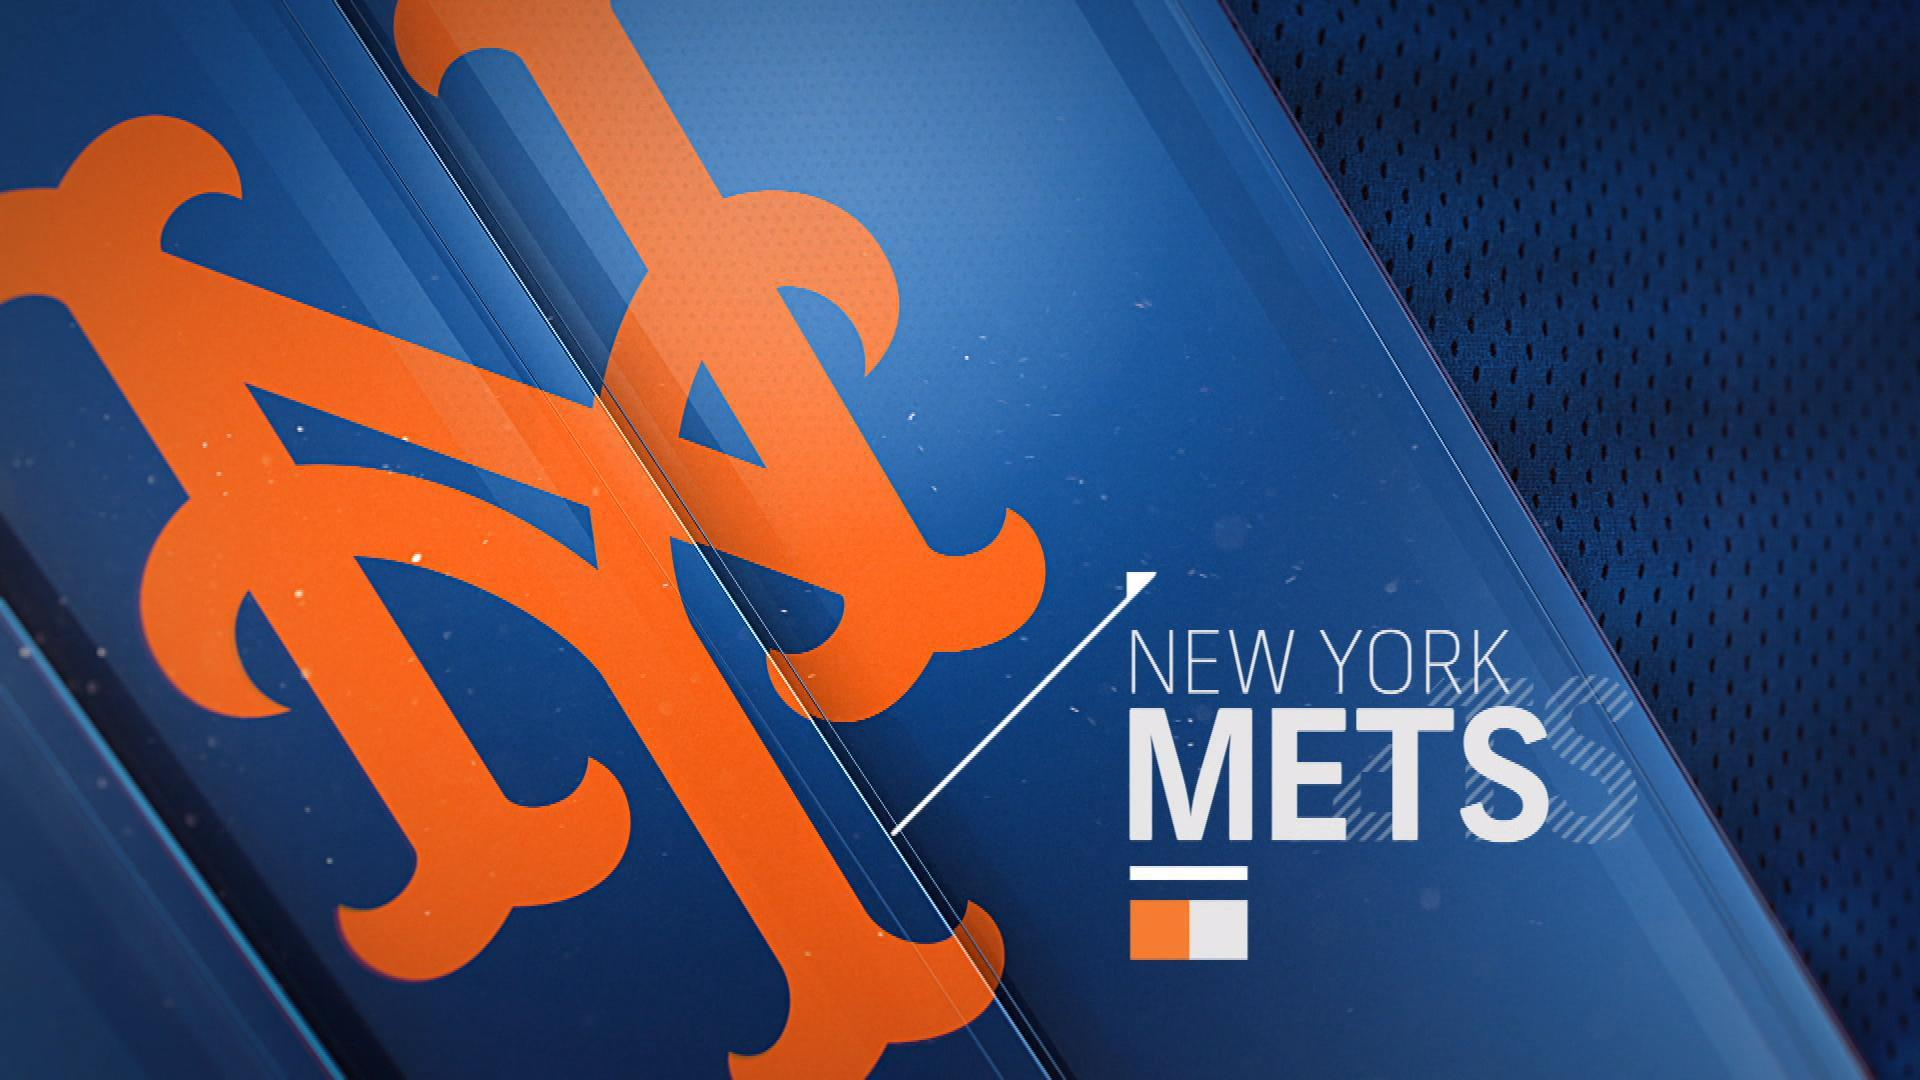 New York Mets Wallpapers Images Photos Pictures Backgrounds